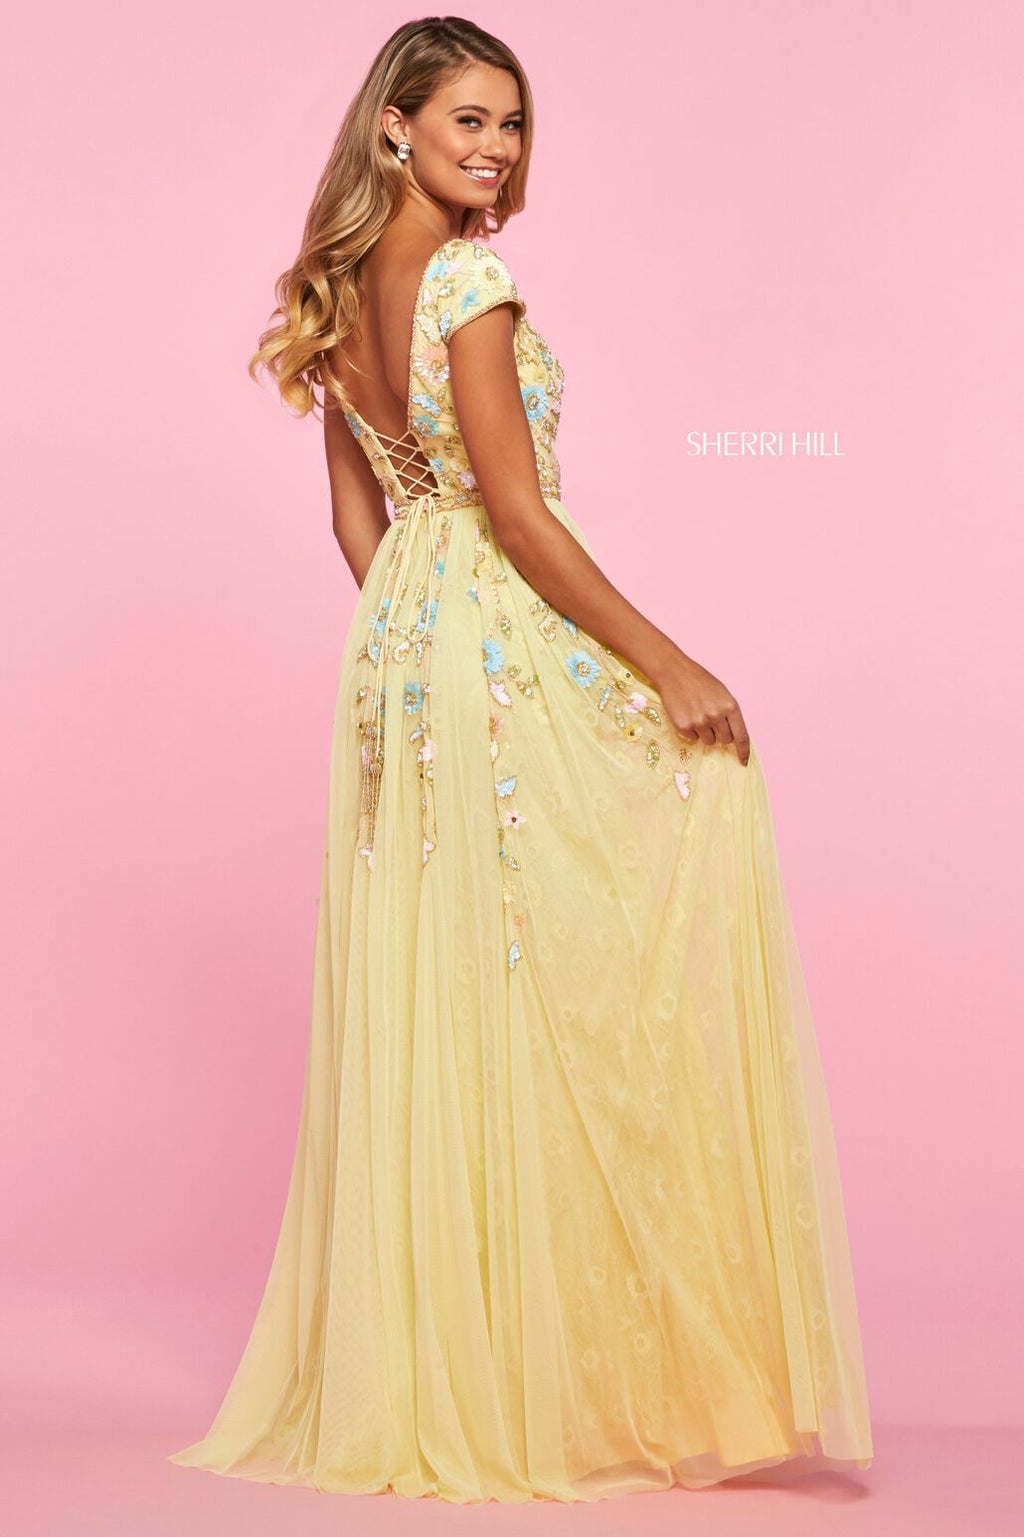 This Sherri Hill 53555 floral beaded A-line gown in yellow/multi features a cap sleeve bodice, a lace up back, and gathered chiffon with a lace skirt.